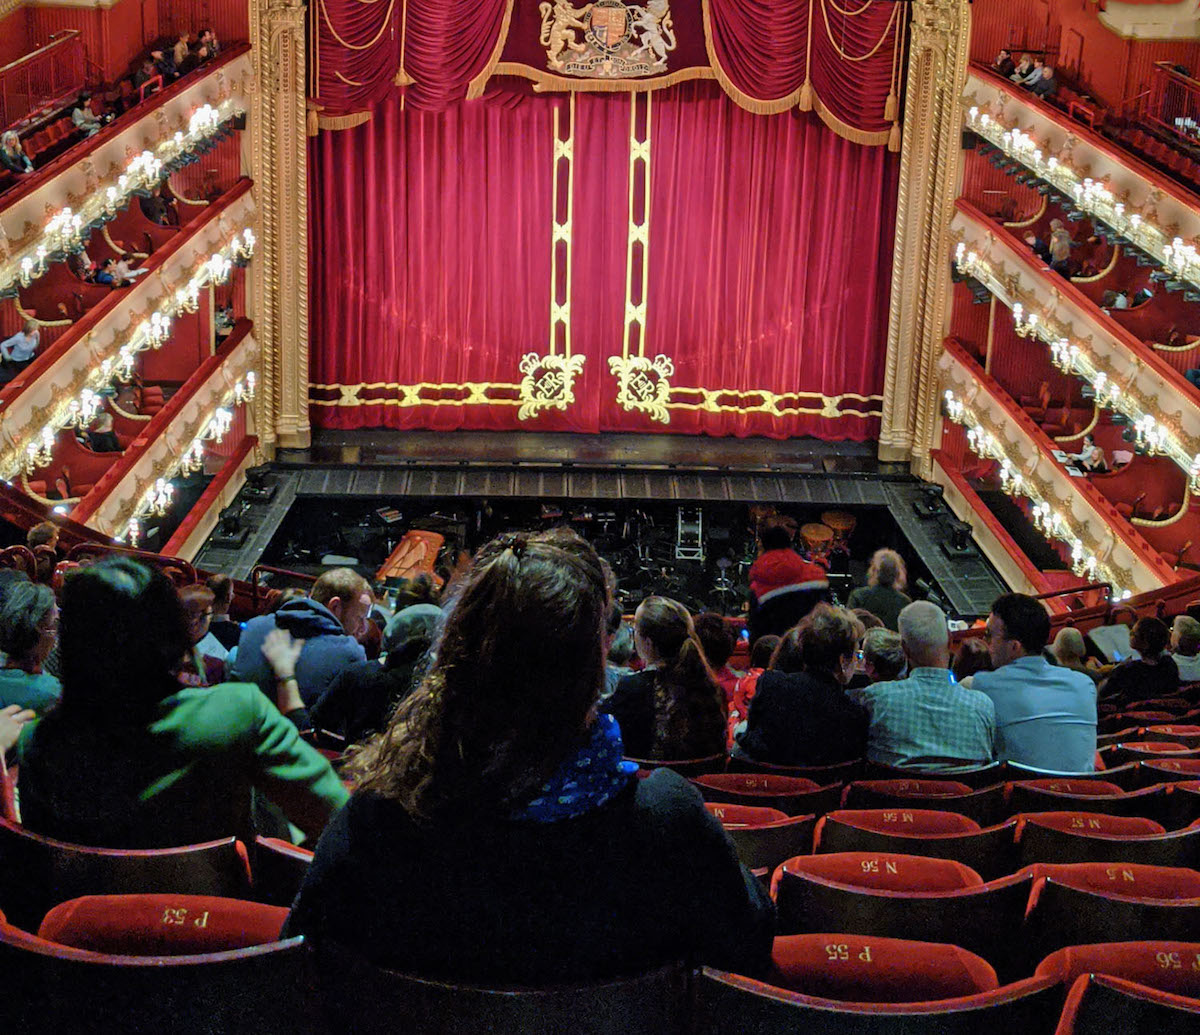 interior view of Royal Opera House from Upper Amphitheatre seat